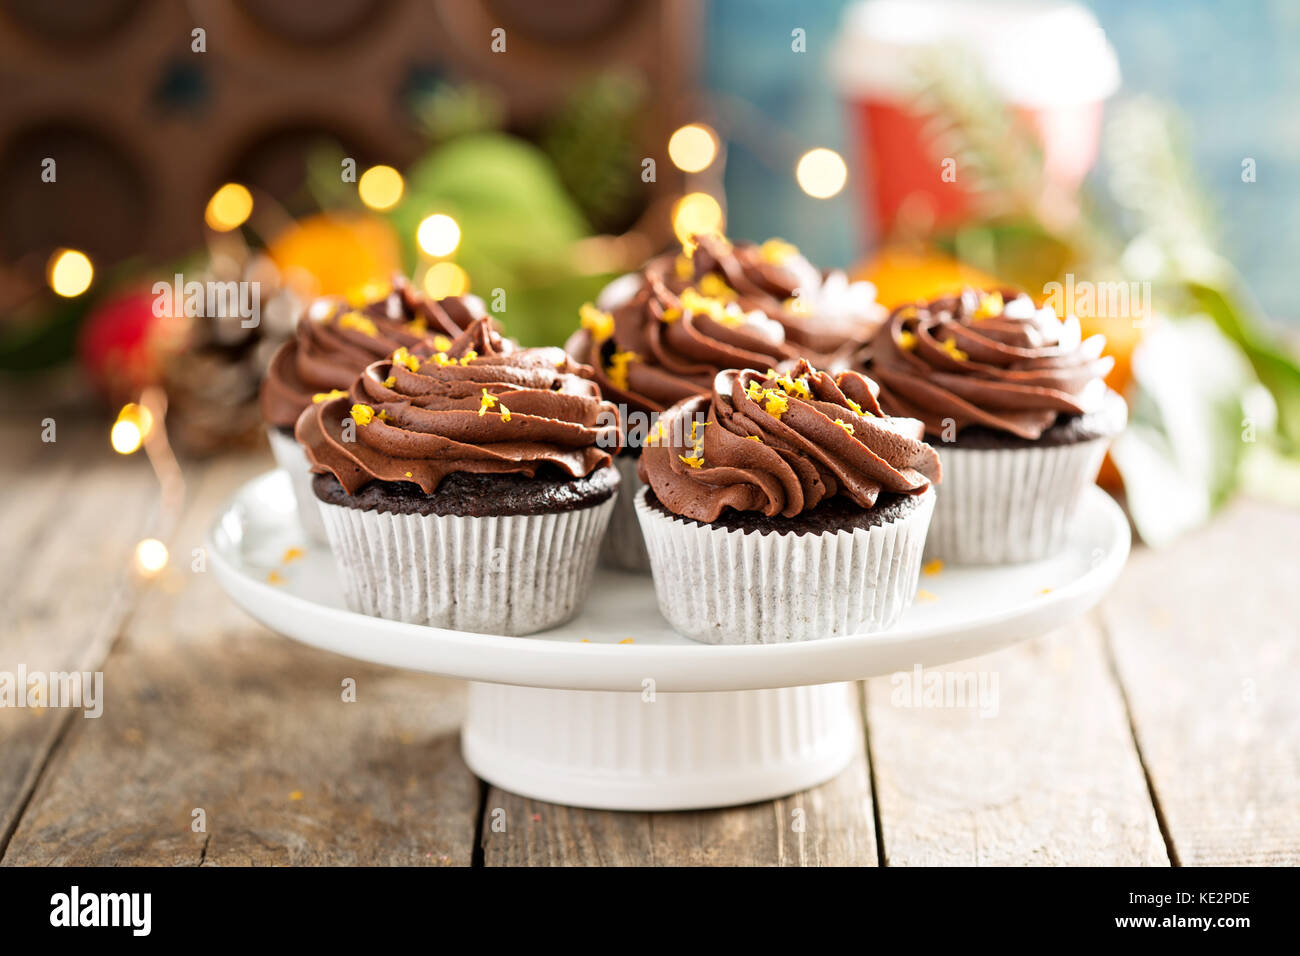 Chocolate orange cupcakes for Christmas with ganache frosting - Stock Image